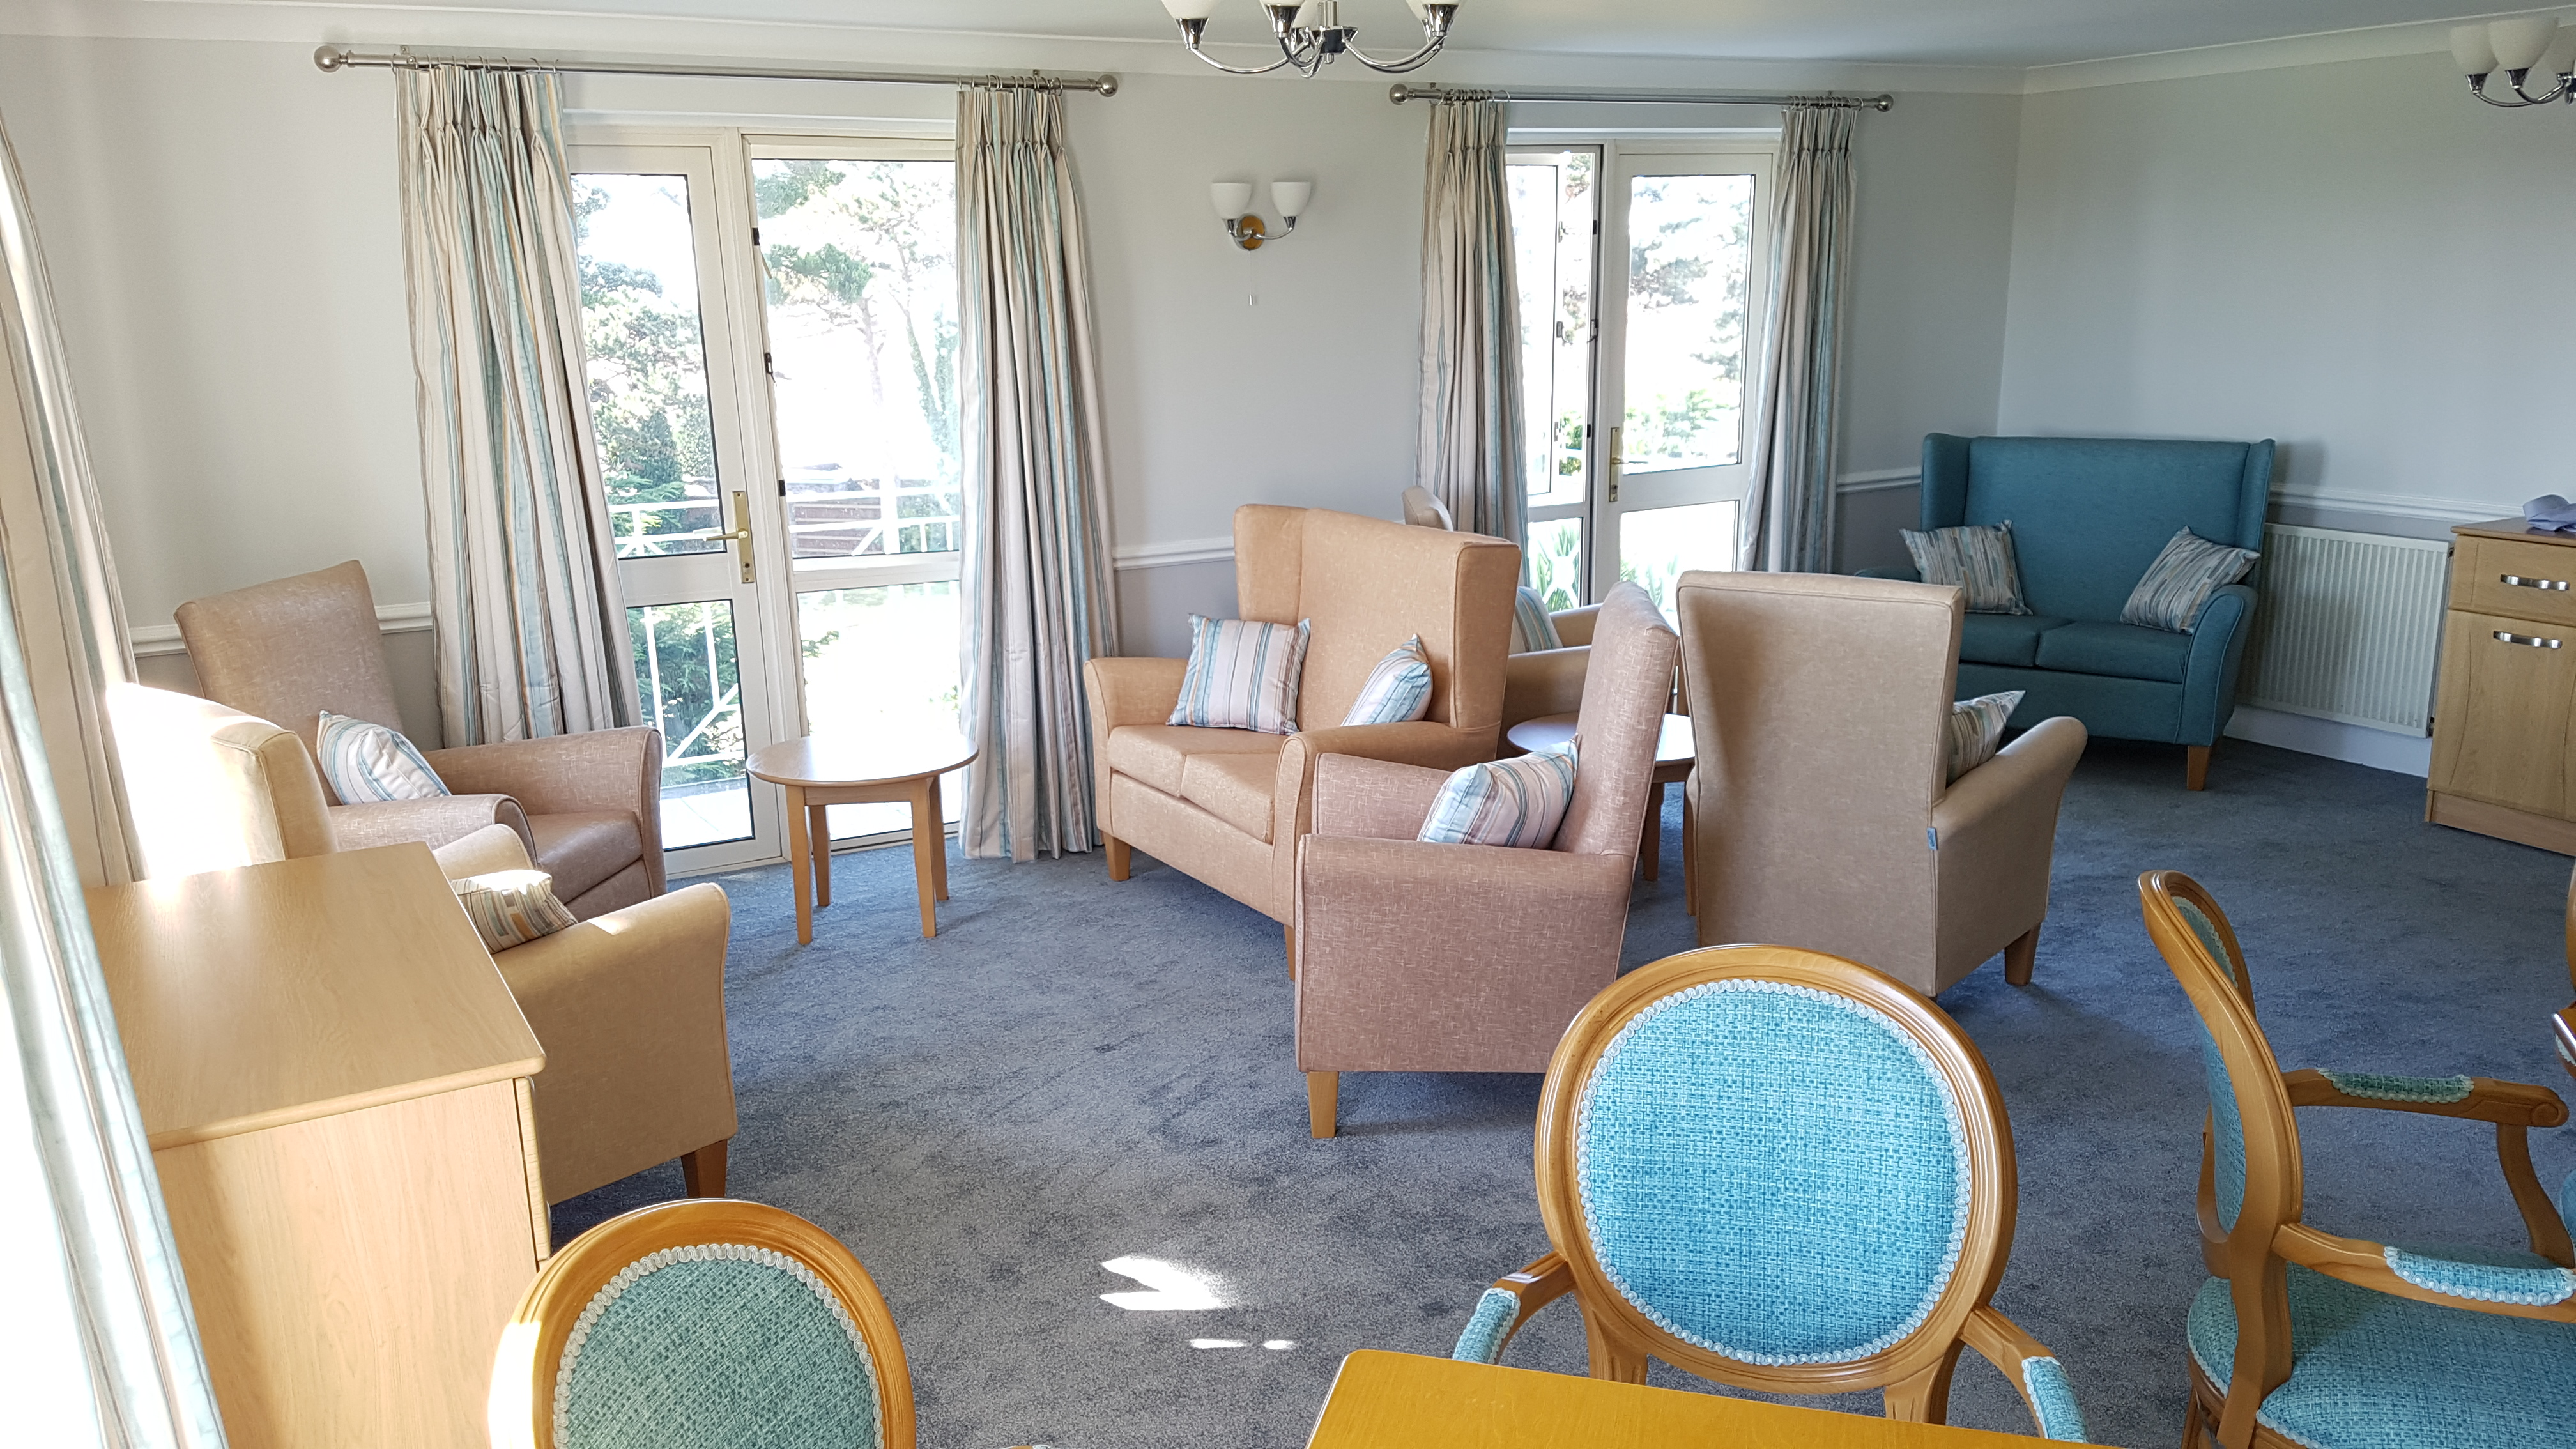 Refreshing Room Renewal for Residential Home